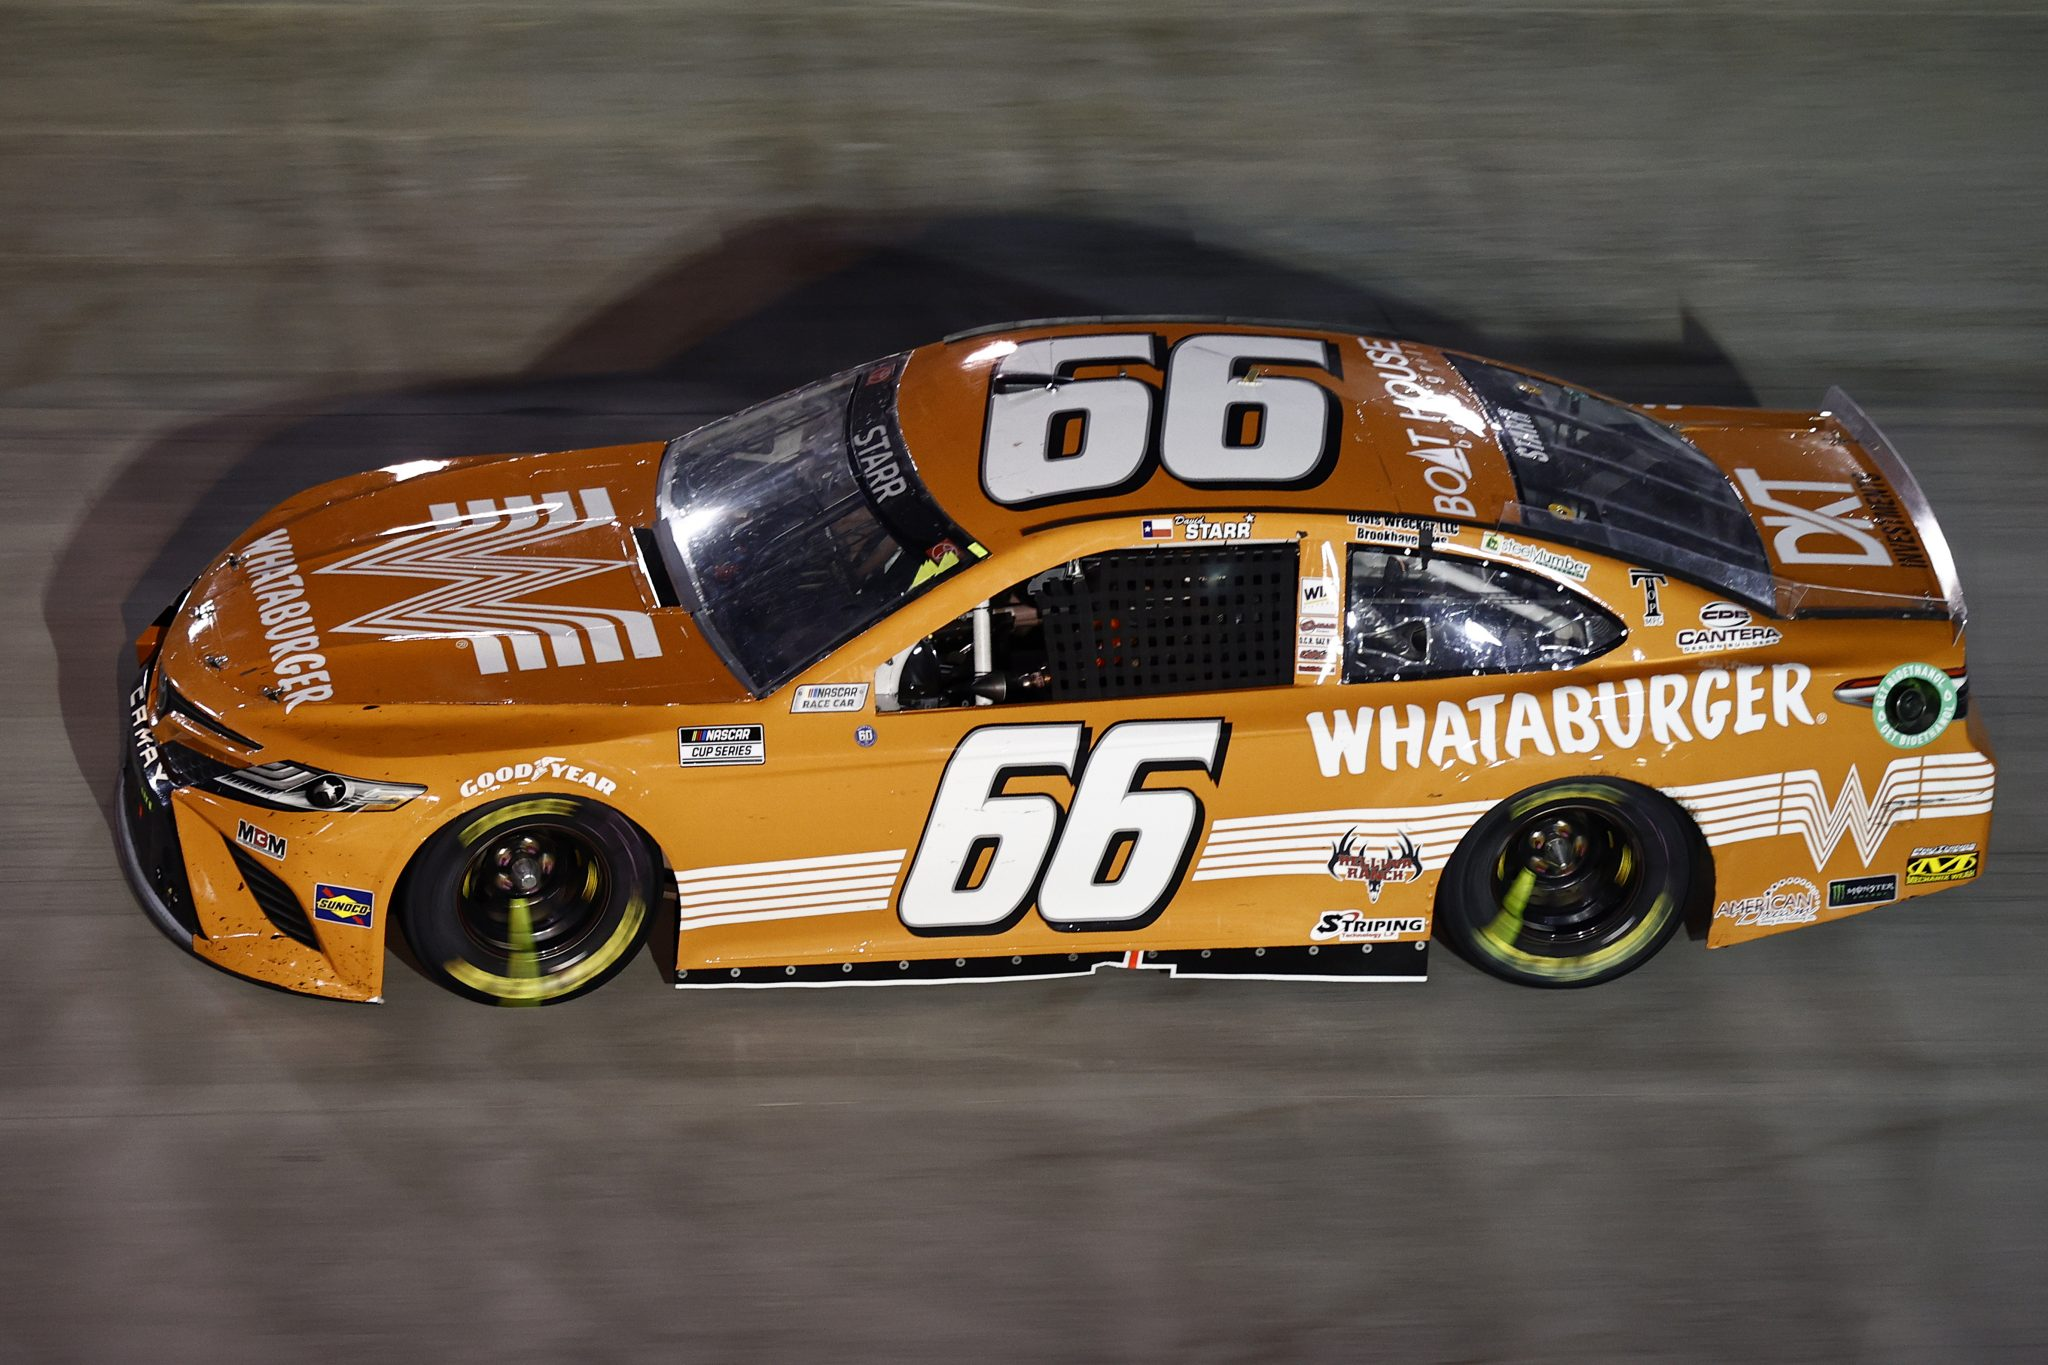 BRISTOL, TENNESSEE - SEPTEMBER 18: David Starr, driver of the #66 Whataburger Toyota, drives during the NASCAR Cup Series Bass Pro Shops Night Race at Bristol Motor Speedway on September 18, 2021 in Bristol, Tennessee. (Photo by Jared C. Tilton/Getty Images) | Getty Images